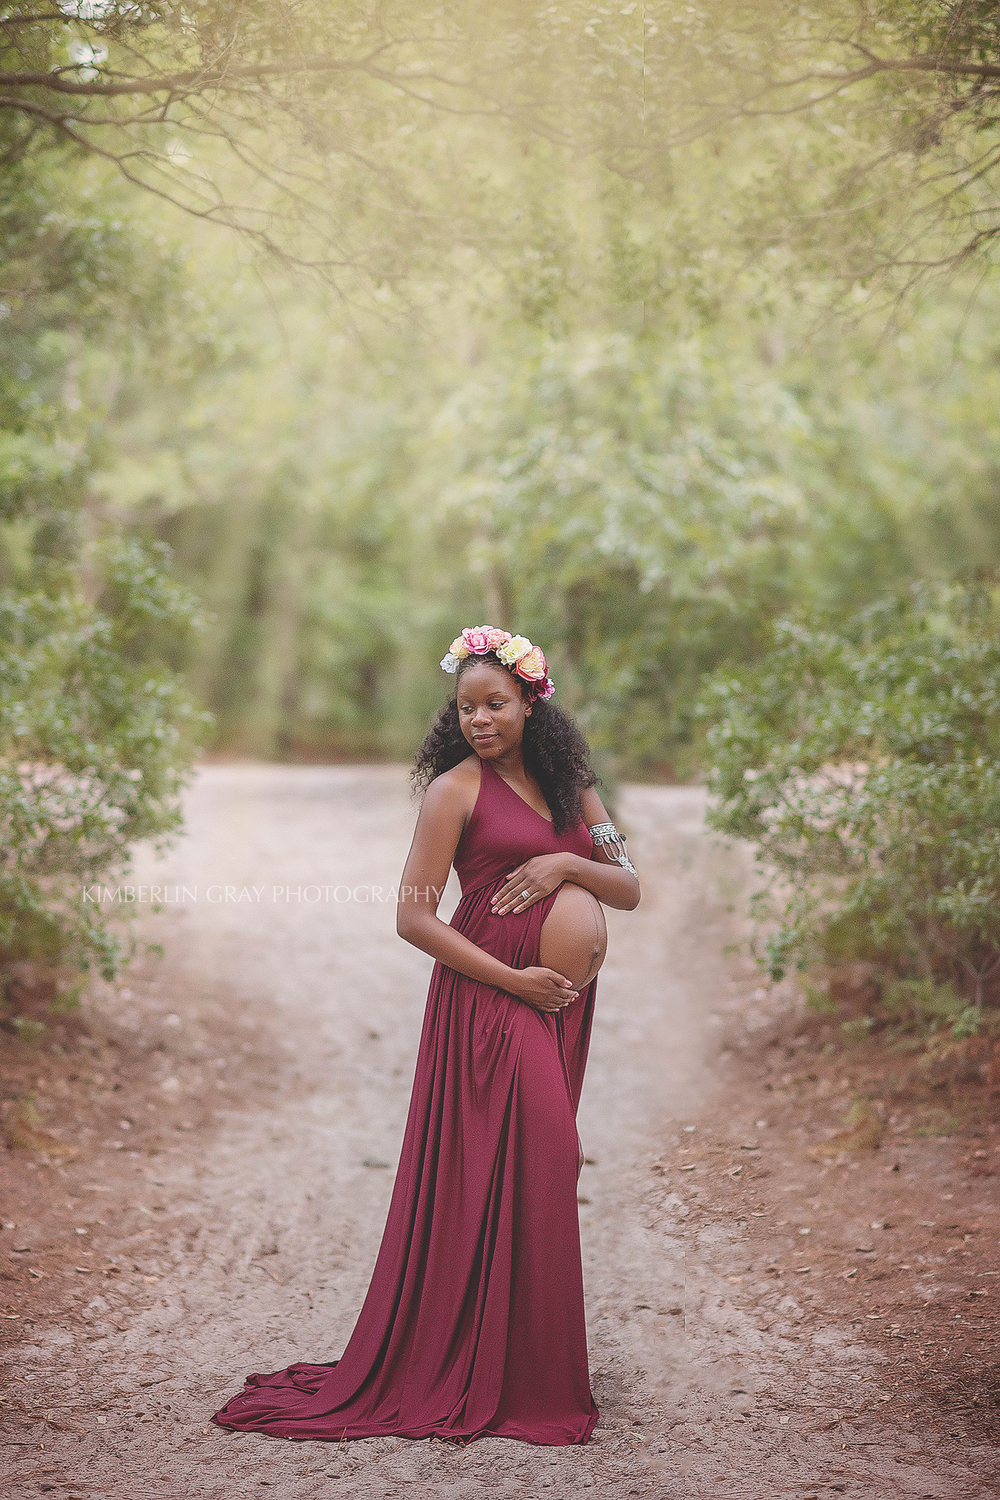 Beautiful Maternity Photo Shoot